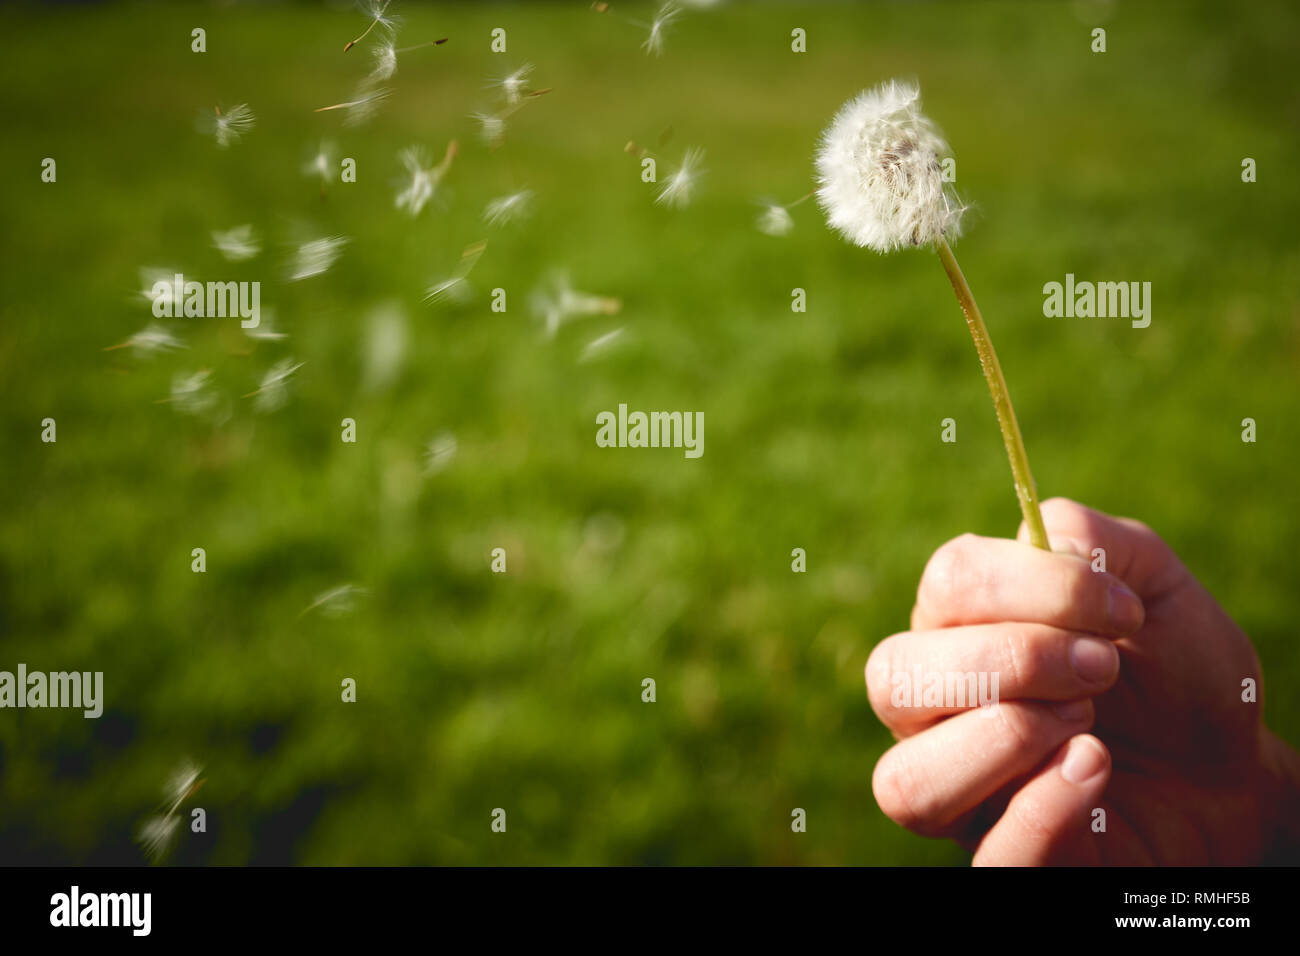 View of a blowing dandelion held by a female hand. Concept. Landscape format. - Stock Image